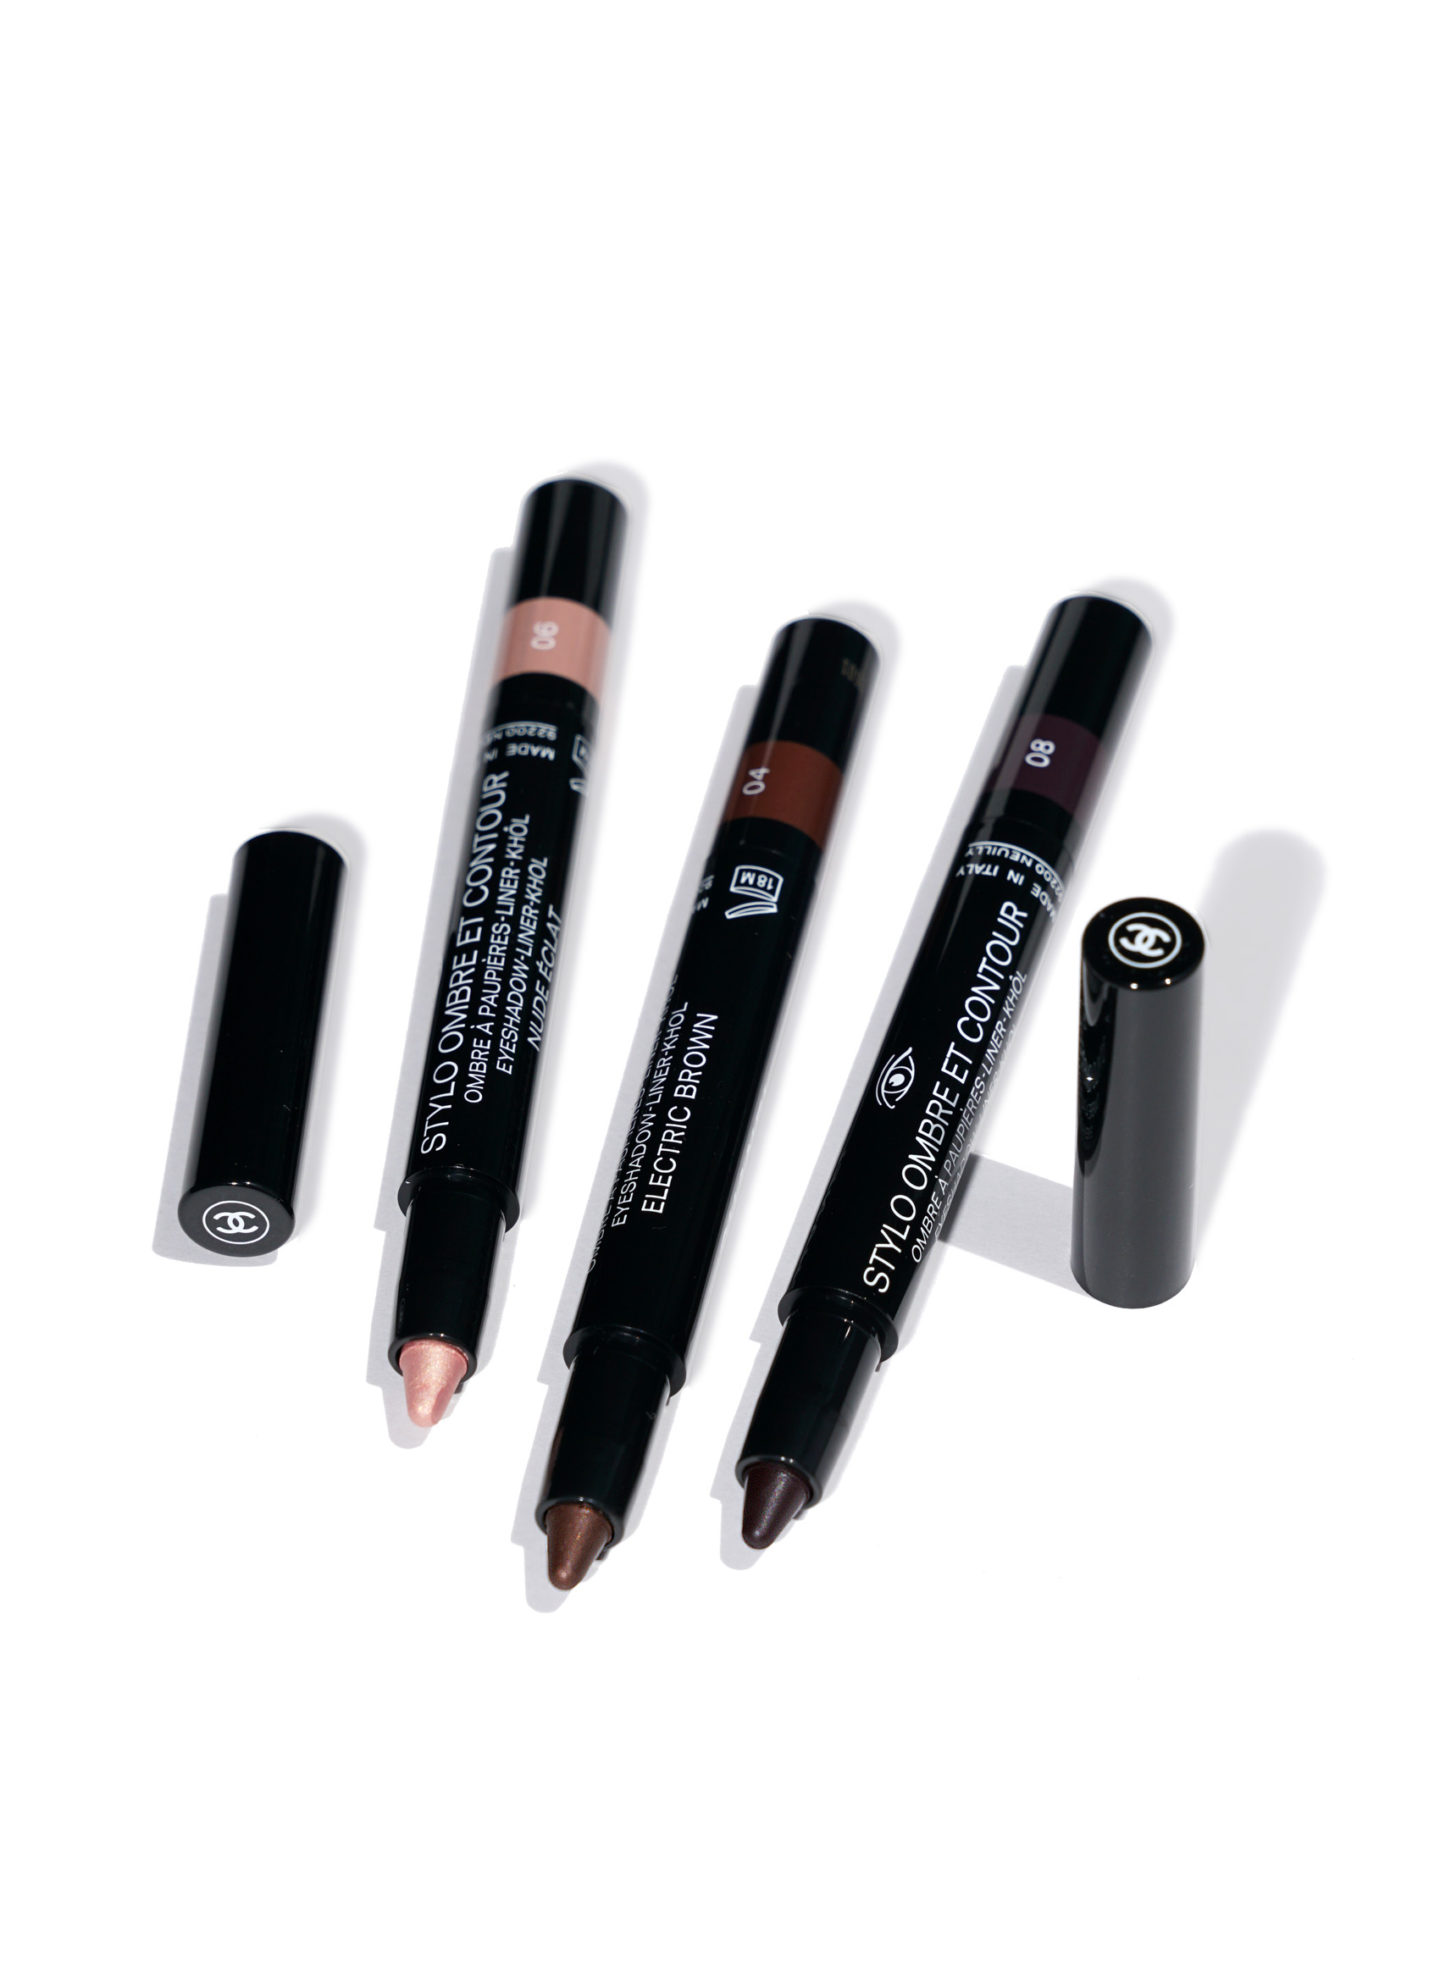 Chanel Stylo Ombre Et Contour Nude Eclat, Electric Brown and Rouge Noir